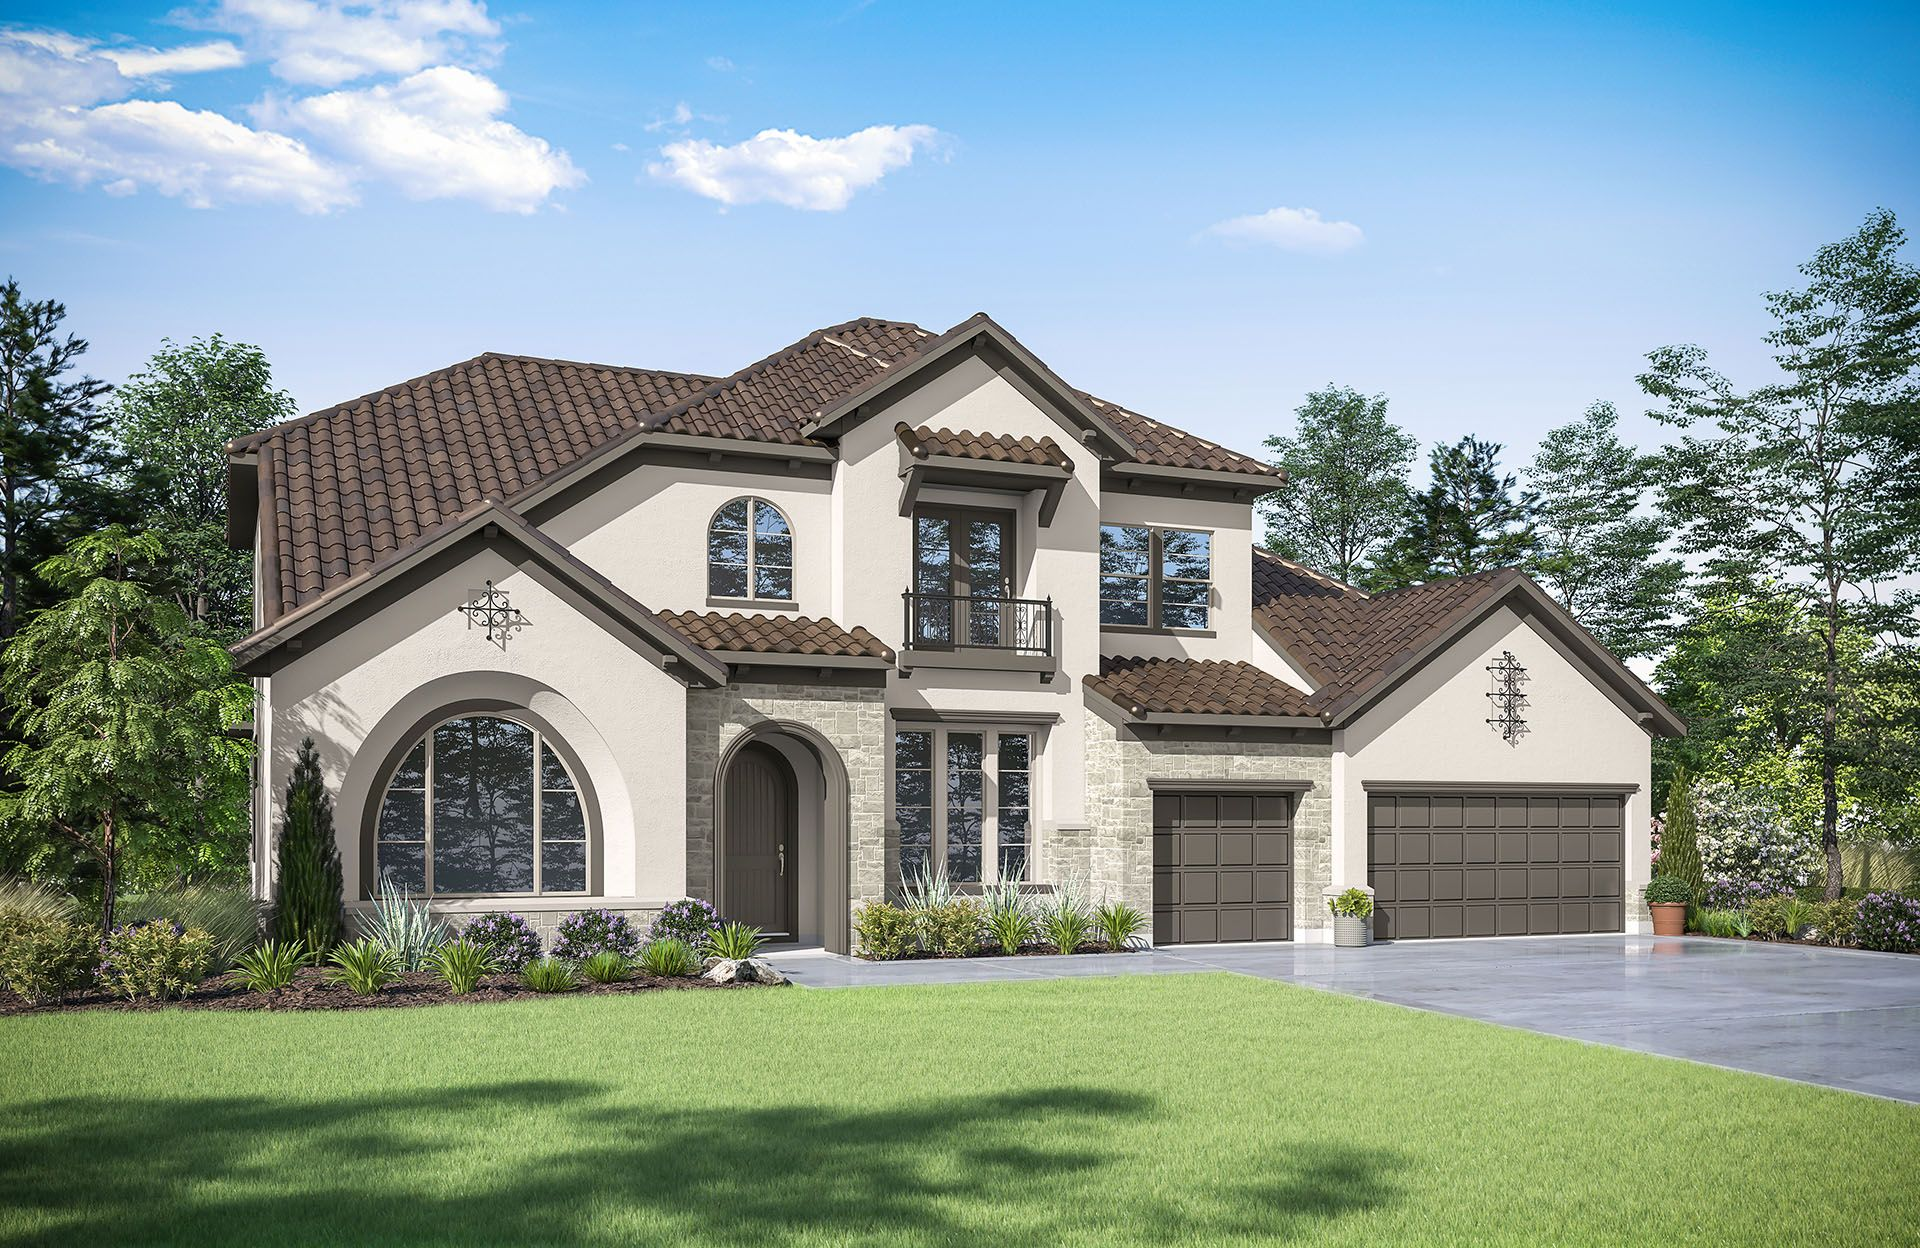 Single Family for Sale at Cimarron Hills - Colinas 307 Flint Ridge Trail Georgetown, Texas 78628 United States